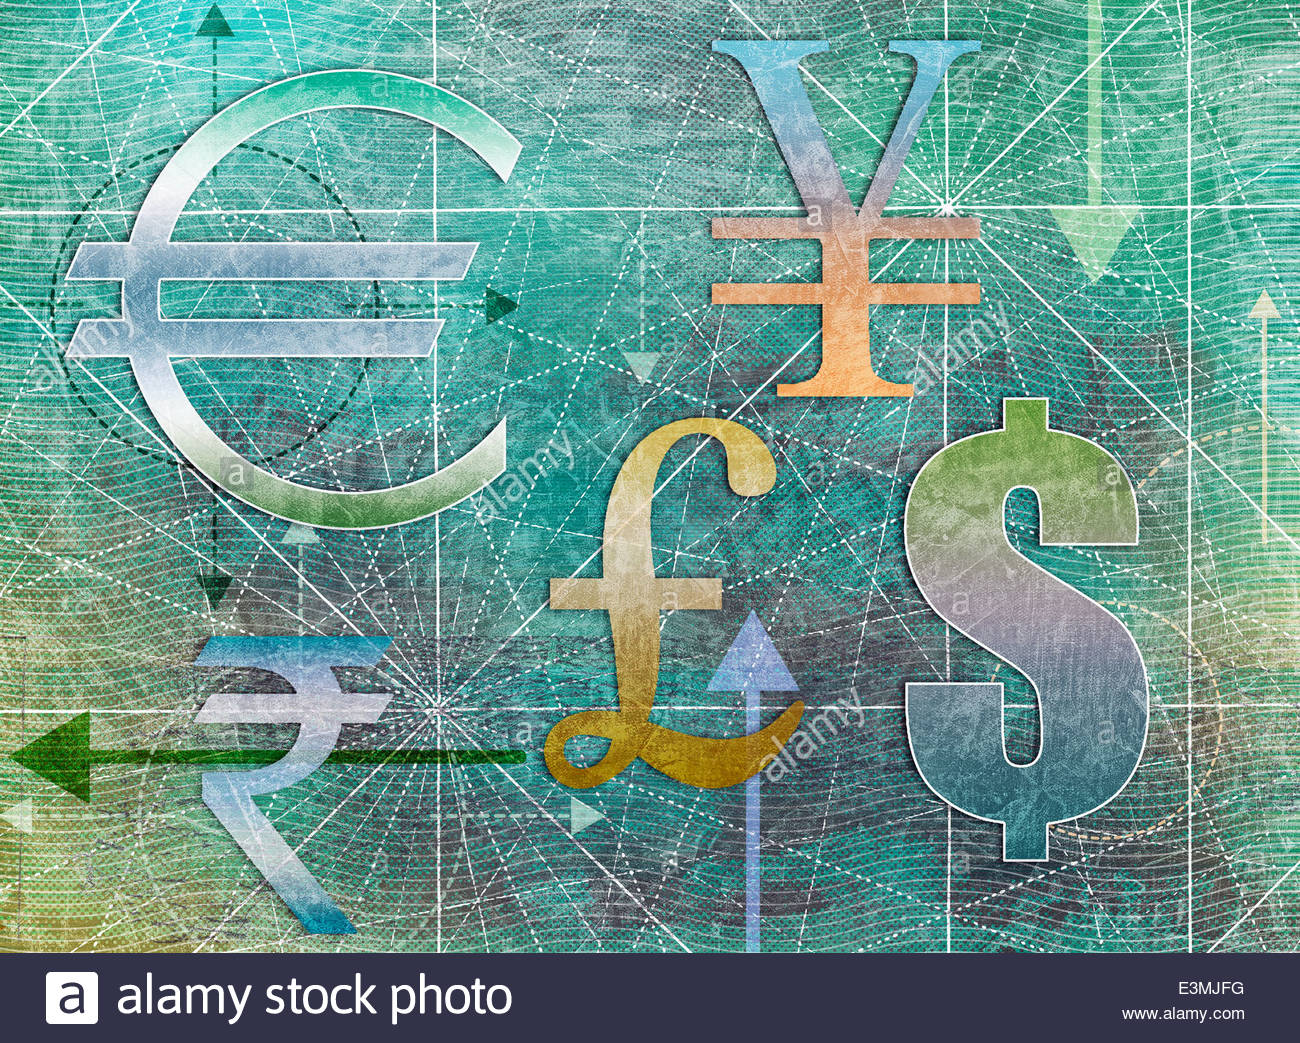 International Currency Symbols Photo Stock